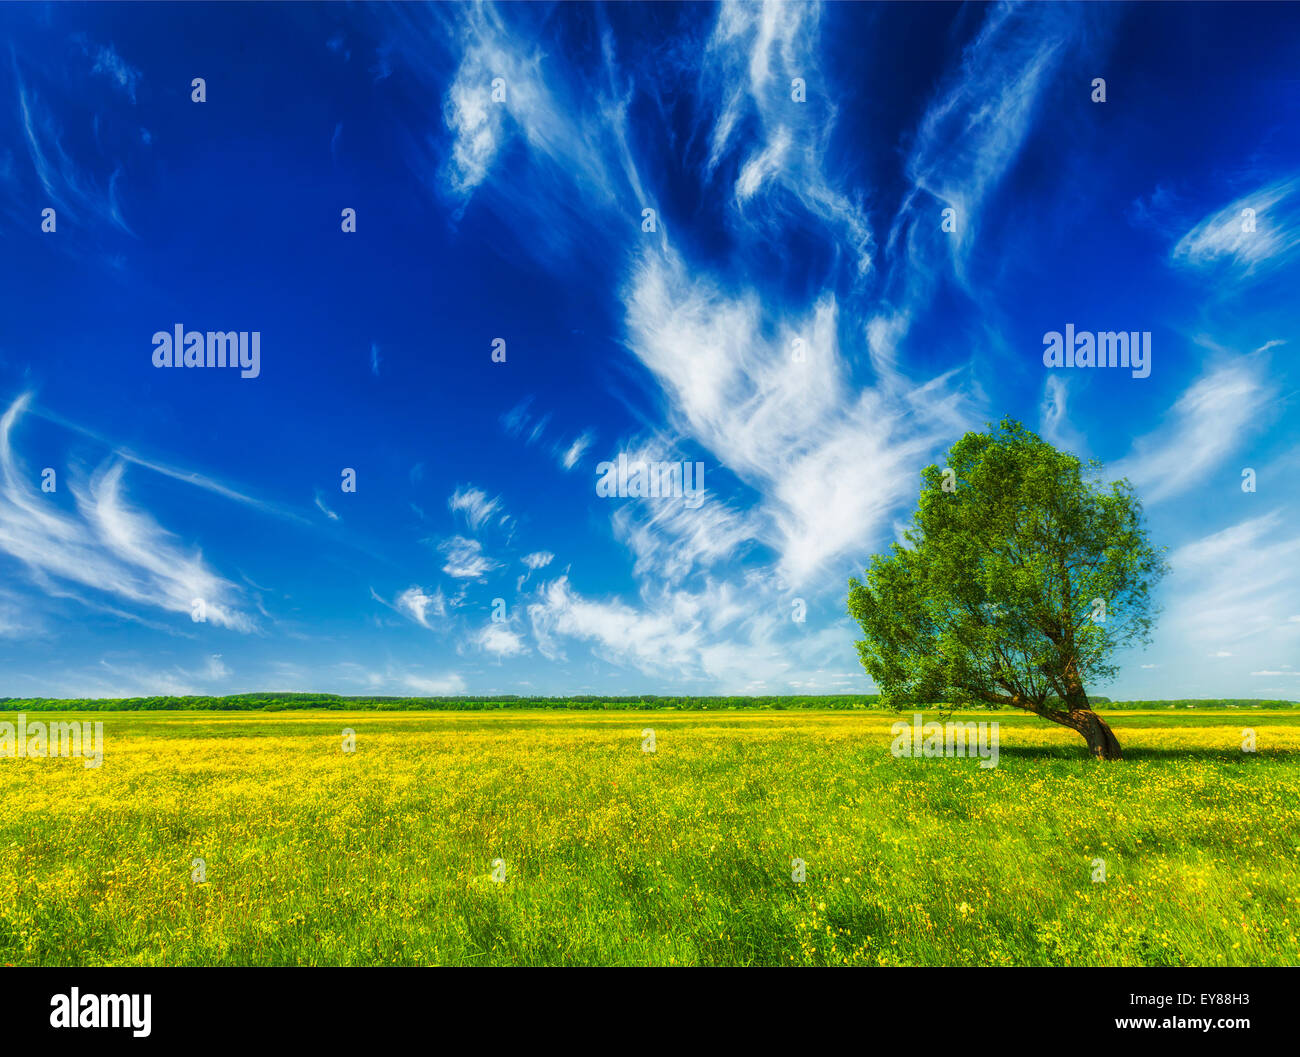 green grass blue sky flowers flower wallpaper spring summer background blooming flowers green grass field meadow scenery landscape under blue sky with single lonely tree